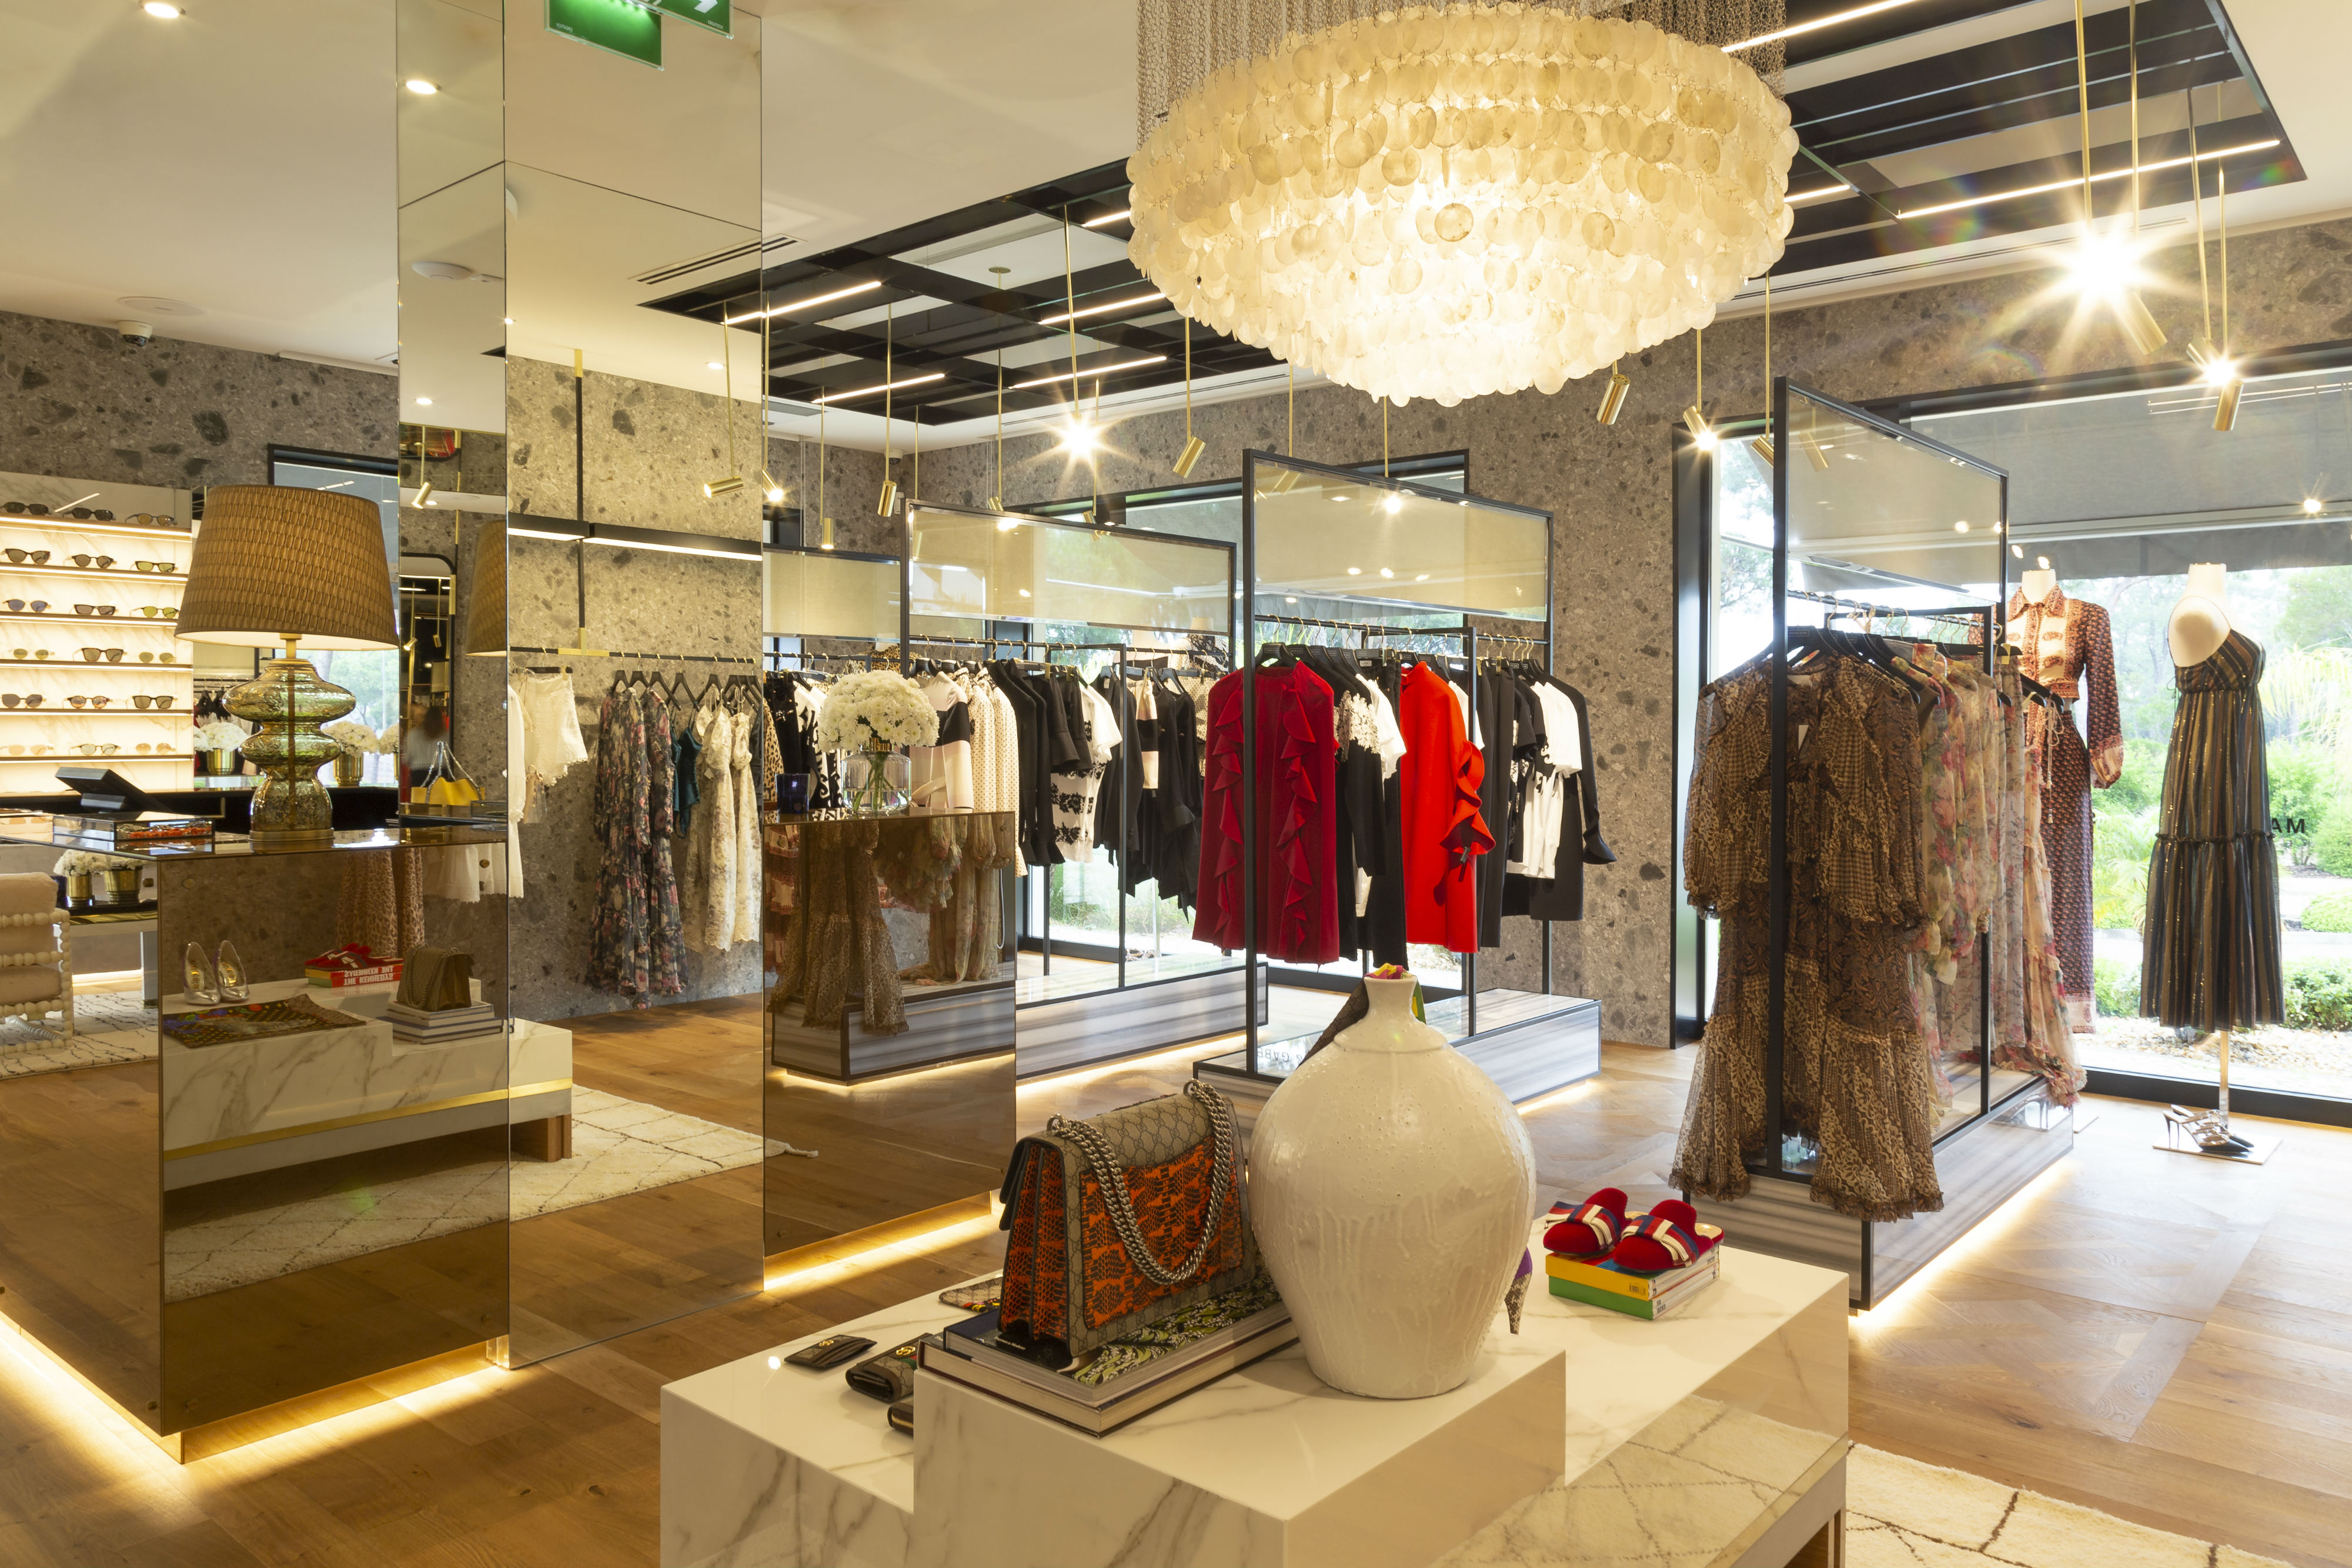 Discover The Best Luxury Stores In Portugal  luxury stores Discover The Best Luxury Stores In Portugal 8e9484534e5b0d193e9b9059928c1689